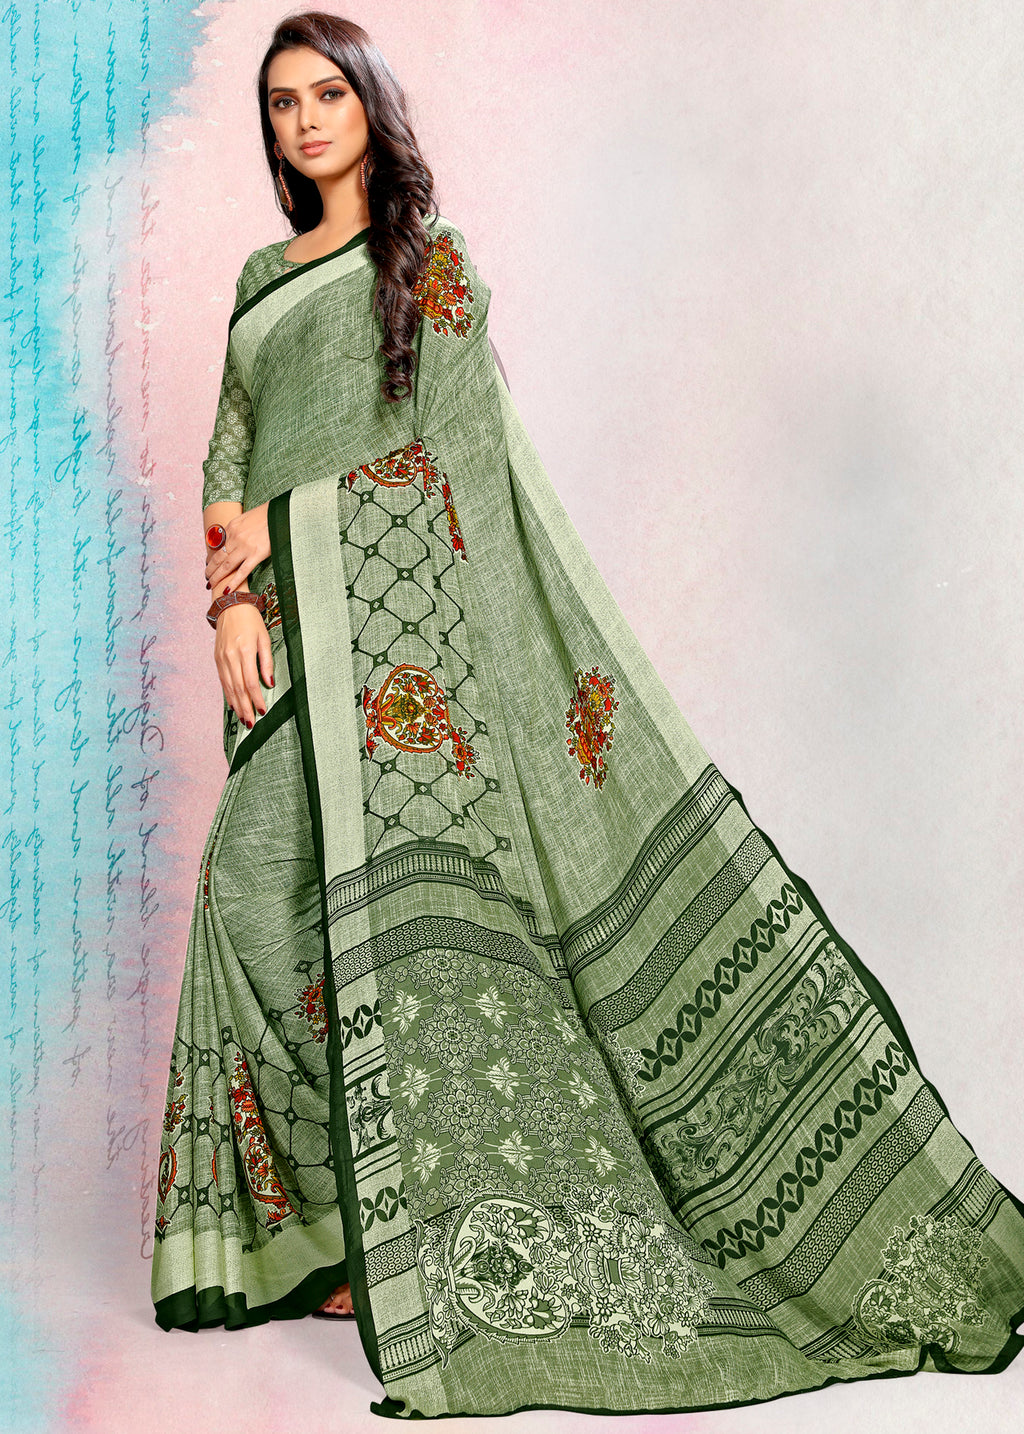 Green Color Crepe Printed Kitty Party Sarees NYF-9489